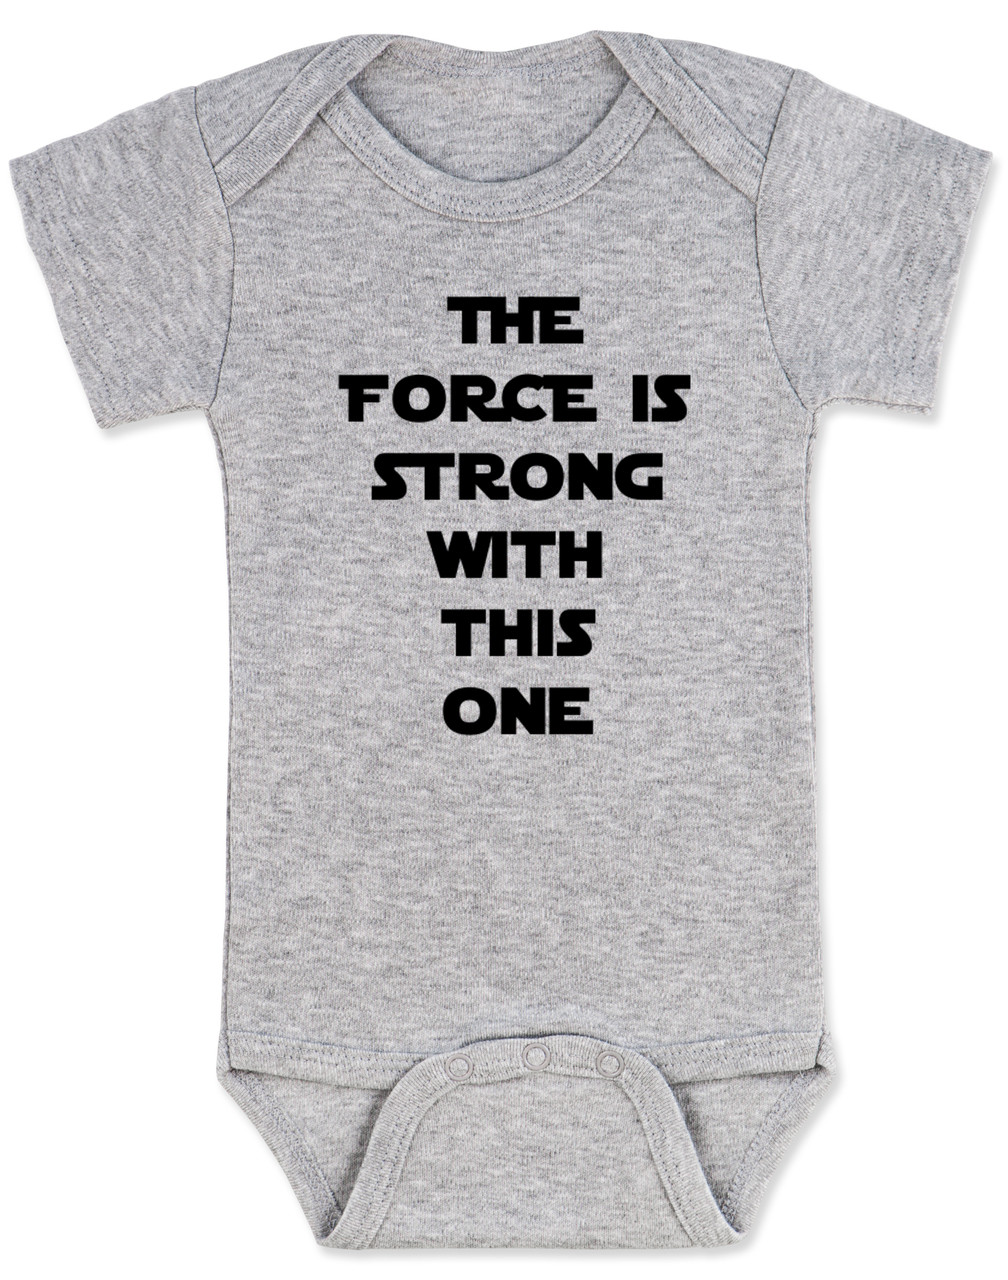 The Fart is Strong With This One Star Wars Cute Baby Girl//Boy clothes onesie